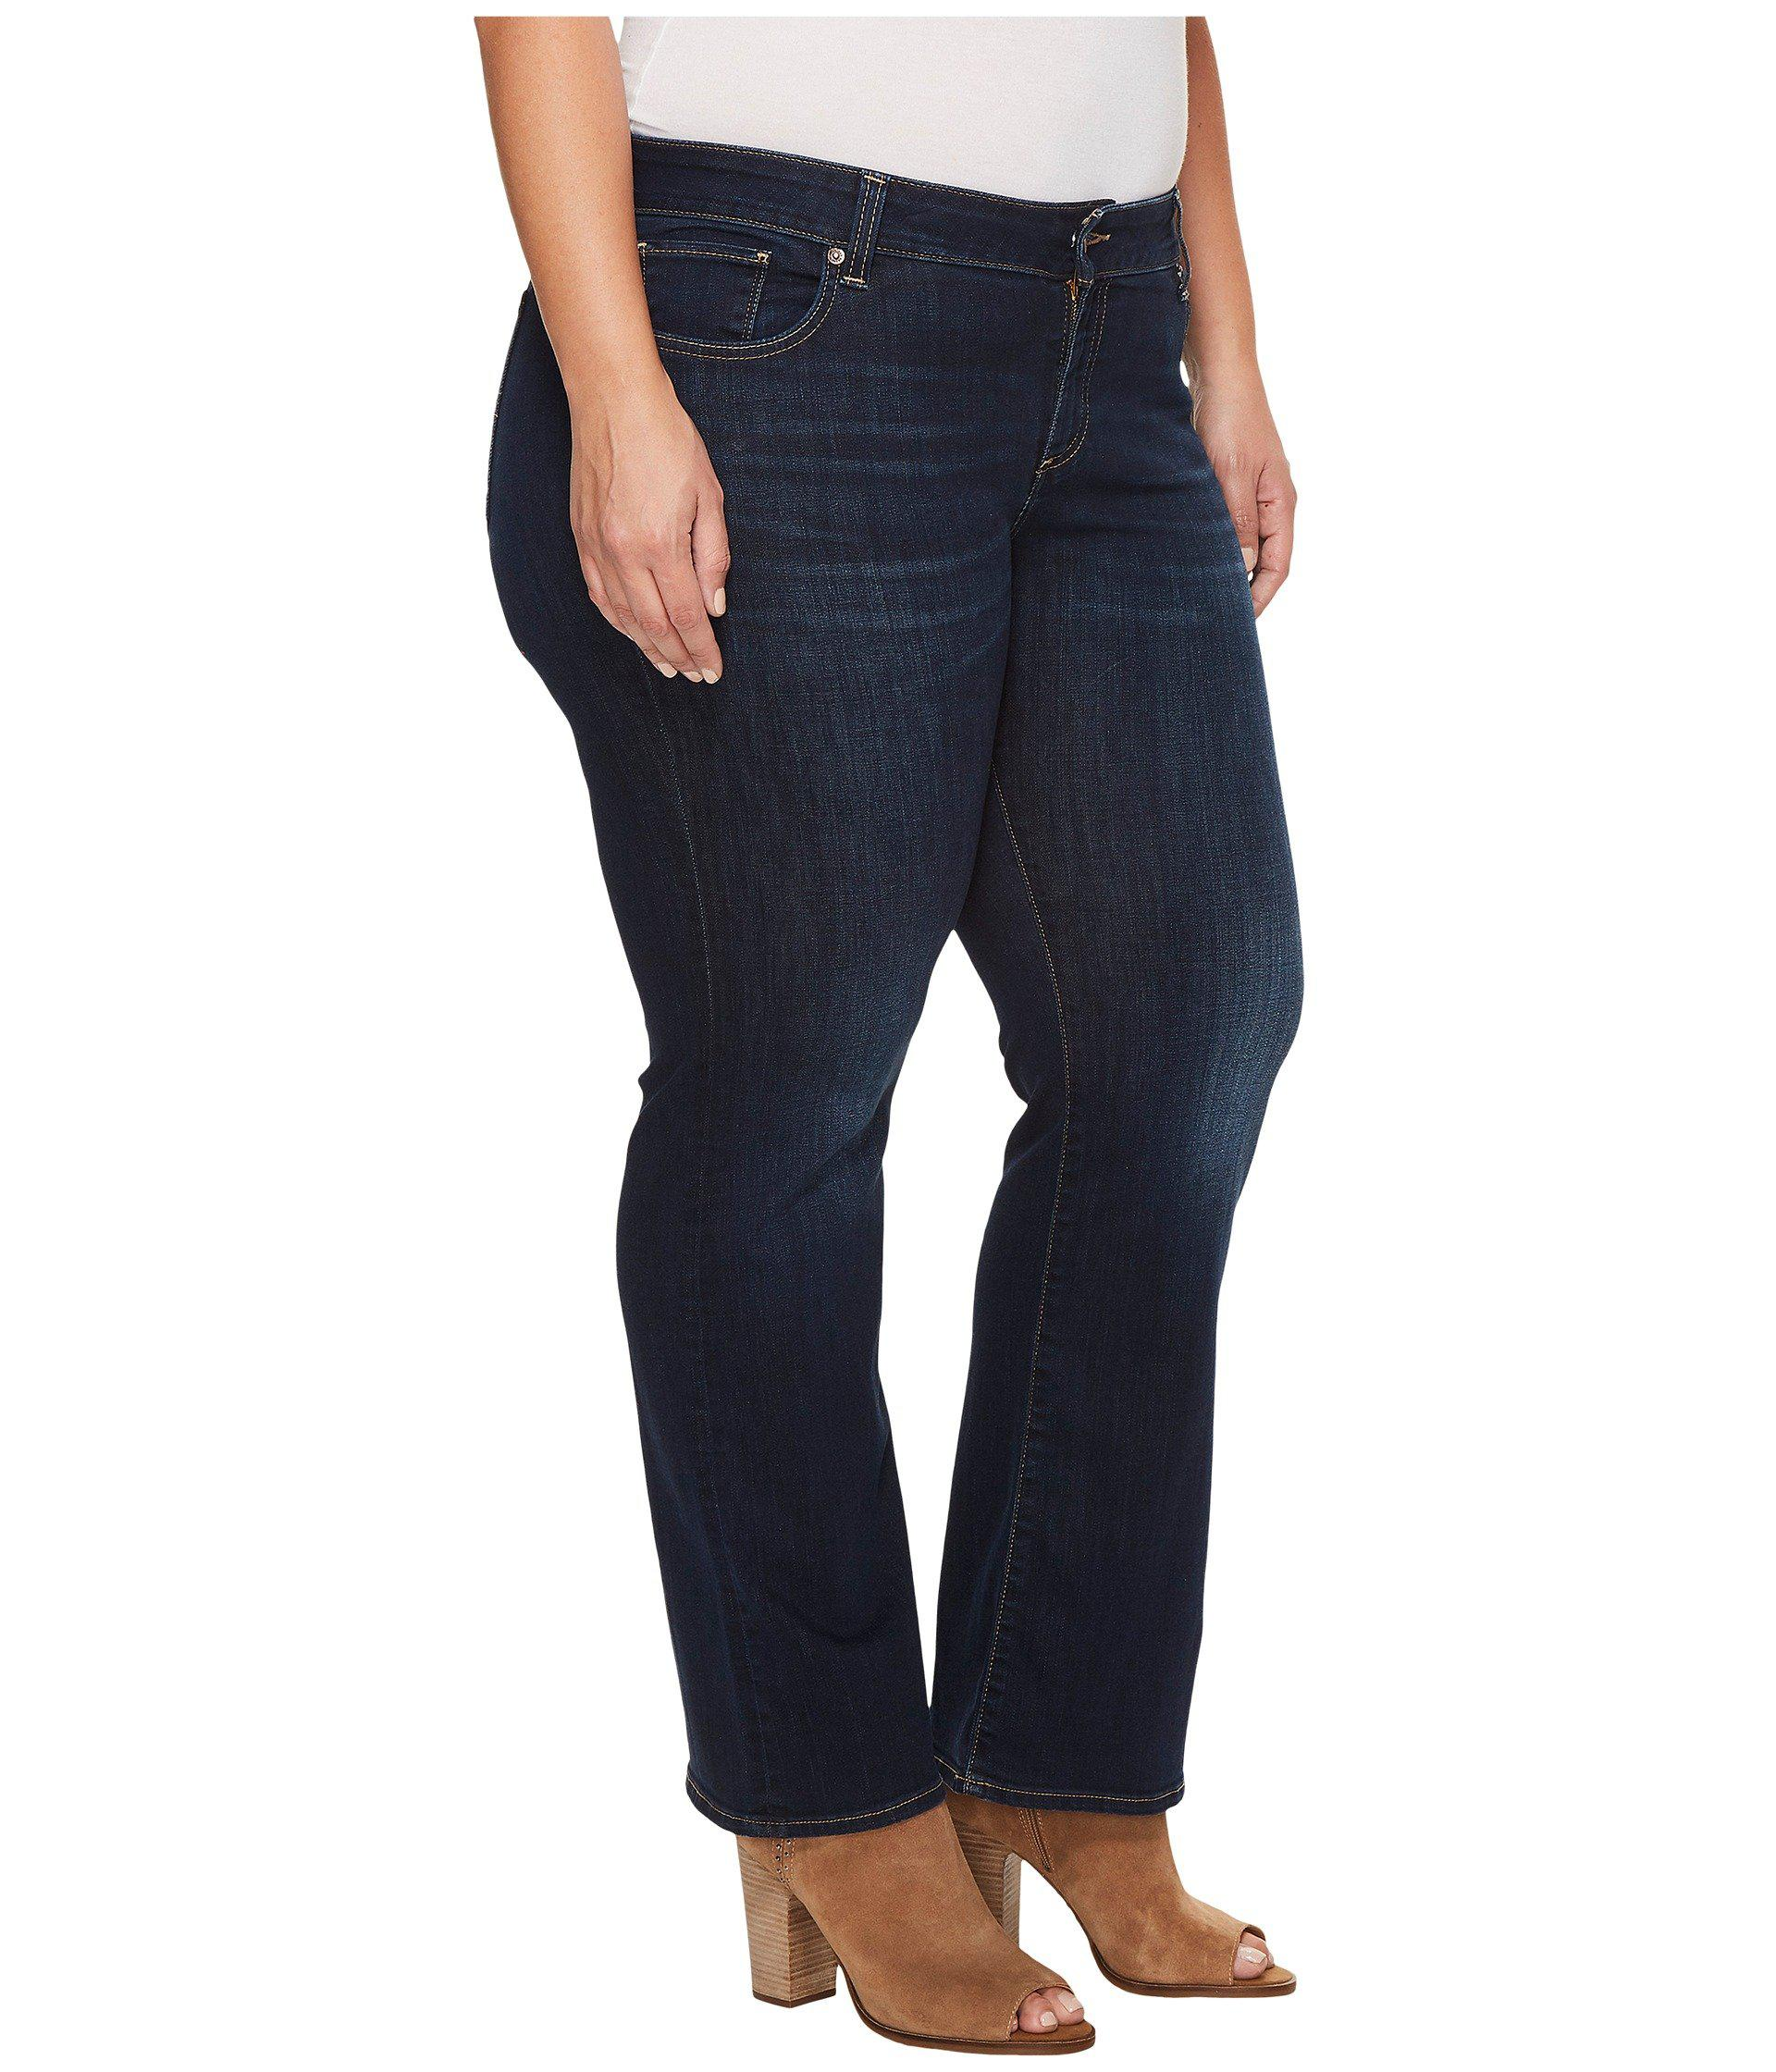 a1ef7ff7251 Lyst - Lucky Brand Plus Size Ginger Bootcut Jeans In Twilight Blue ...